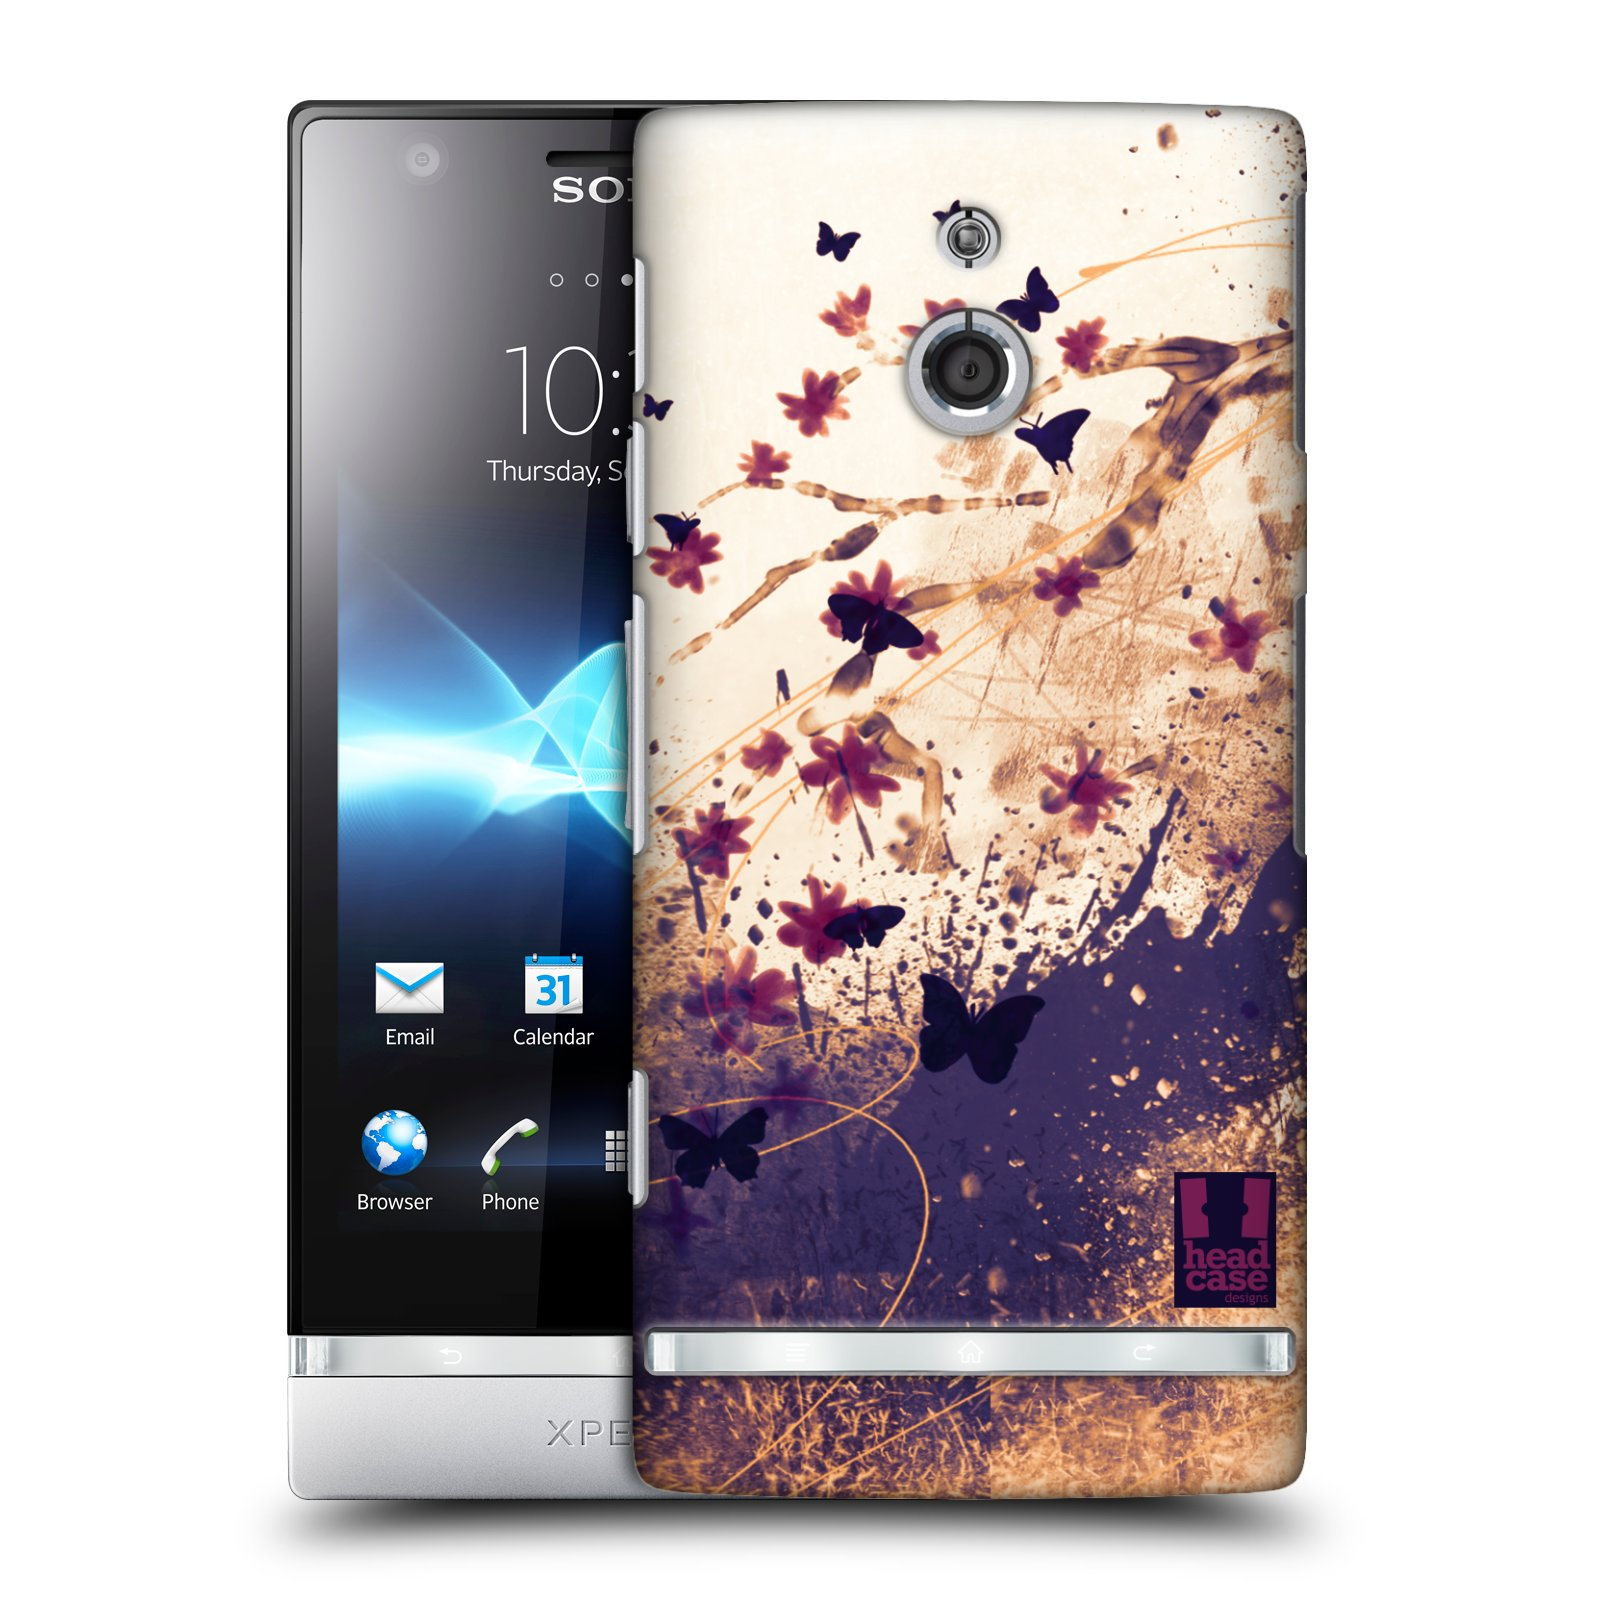 HEAD CASE DESIGNS FLORAL DRIPS CASE COVER FOR SONY XPERIA P LT22i